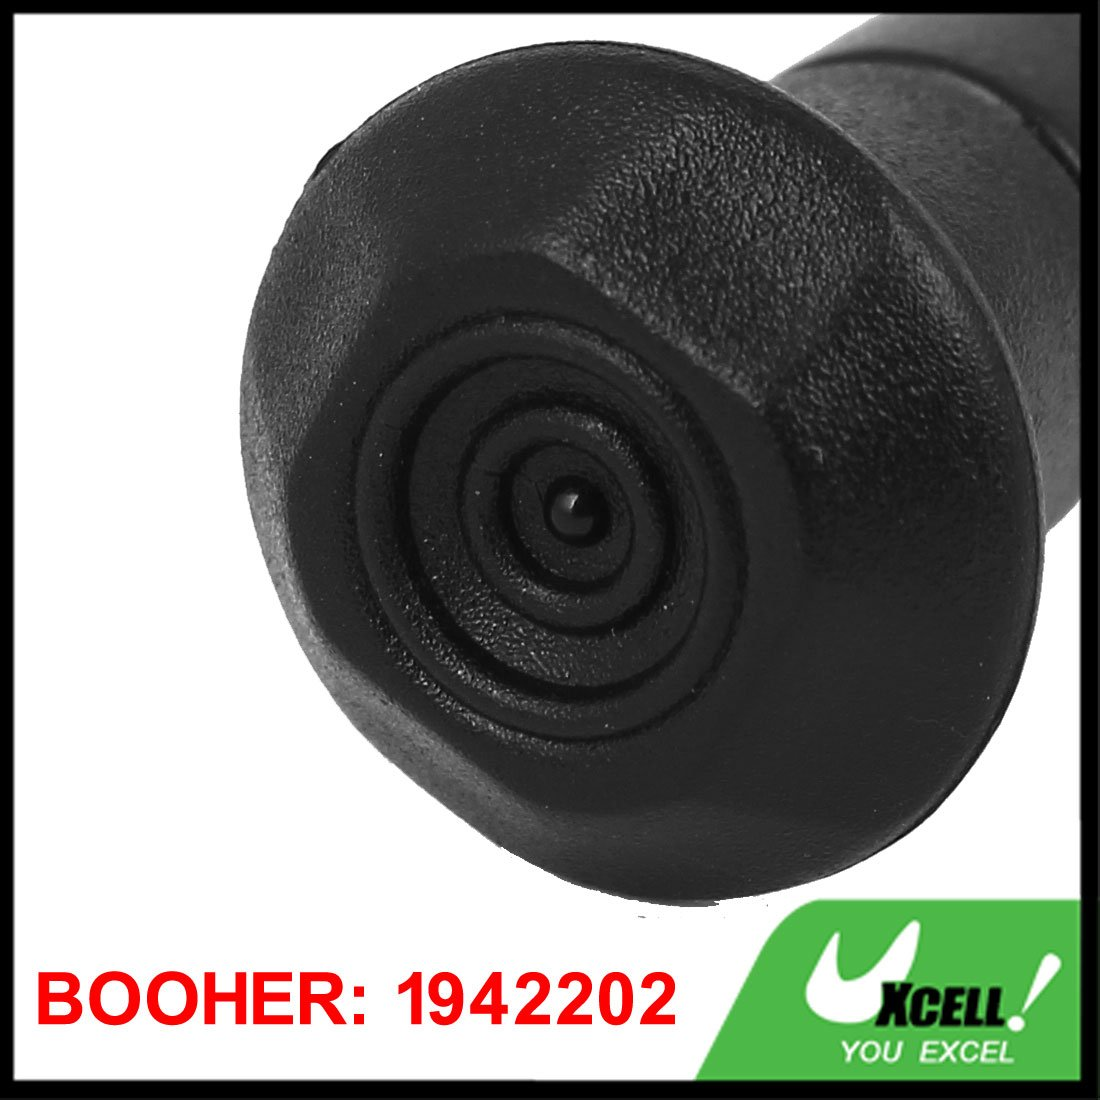 uxcell BOOHER Authorized PH1 Head 150mm Bar Crosshead Phillips Screwdriver